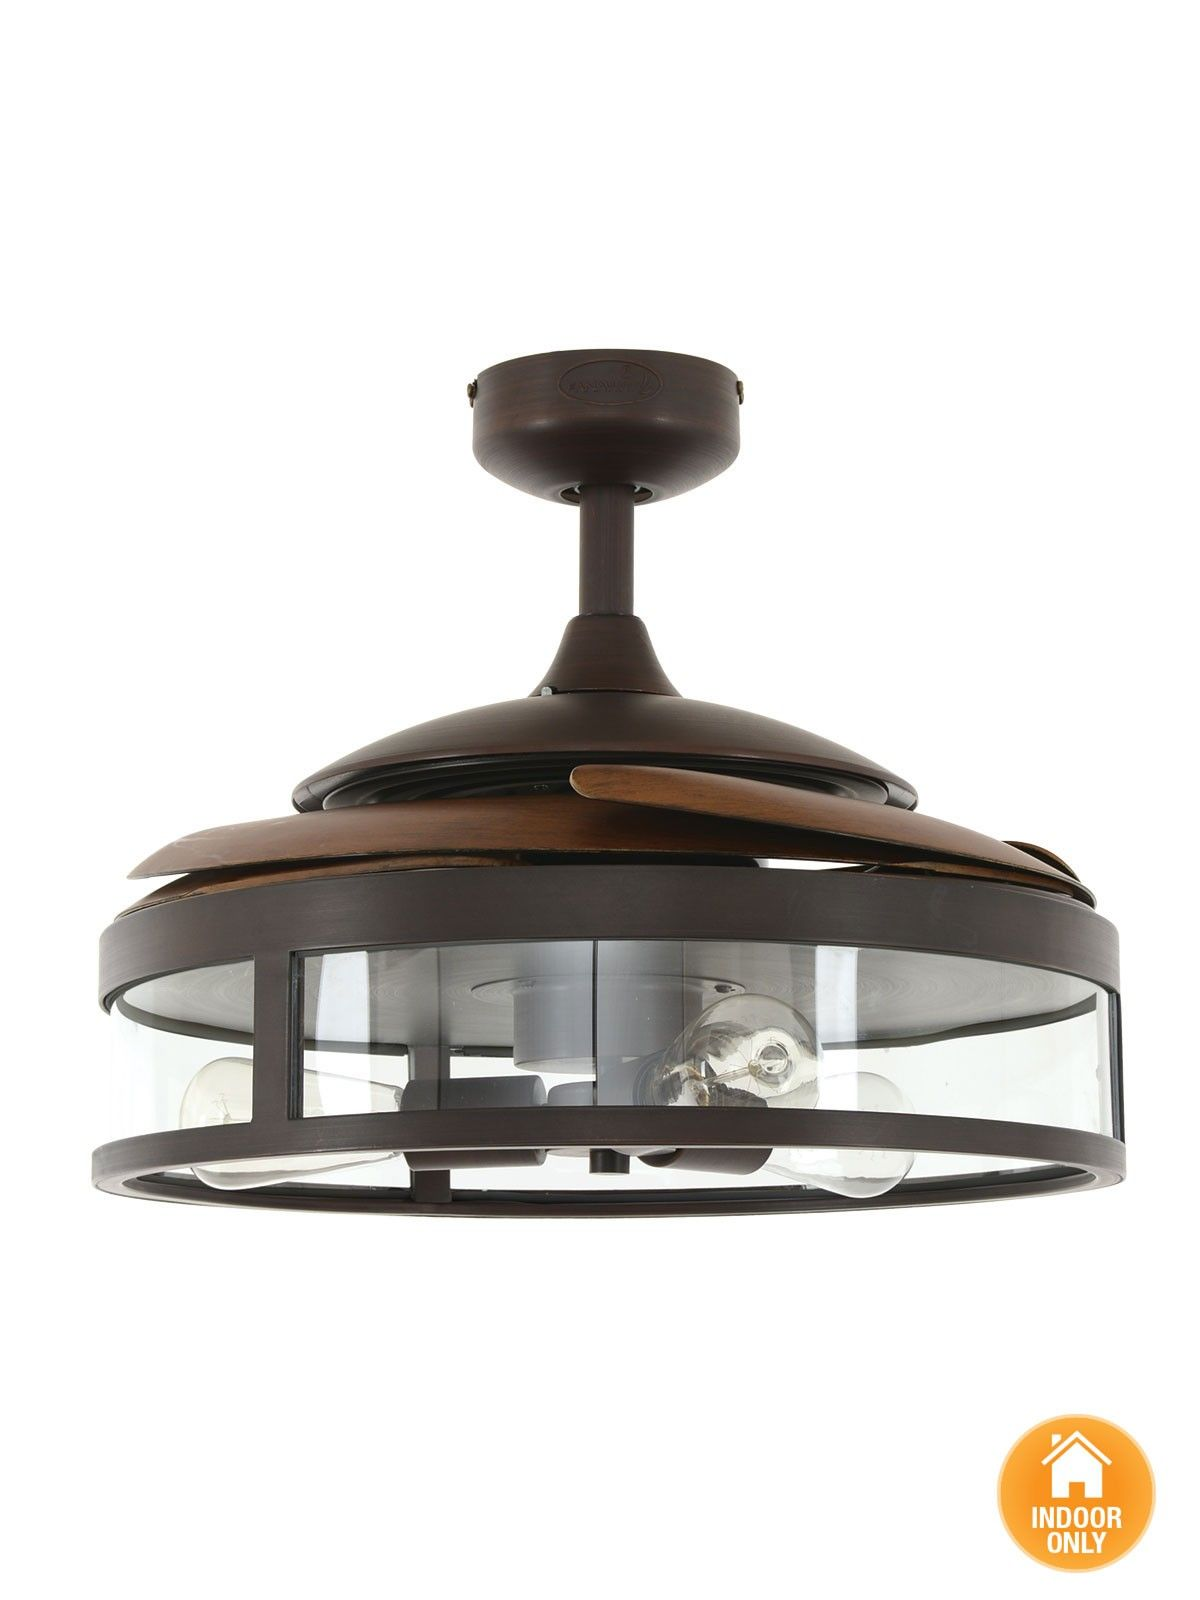 ceiling fans for kitchen vintage formica table and chairs fanaway classic orb fan with clear retractable